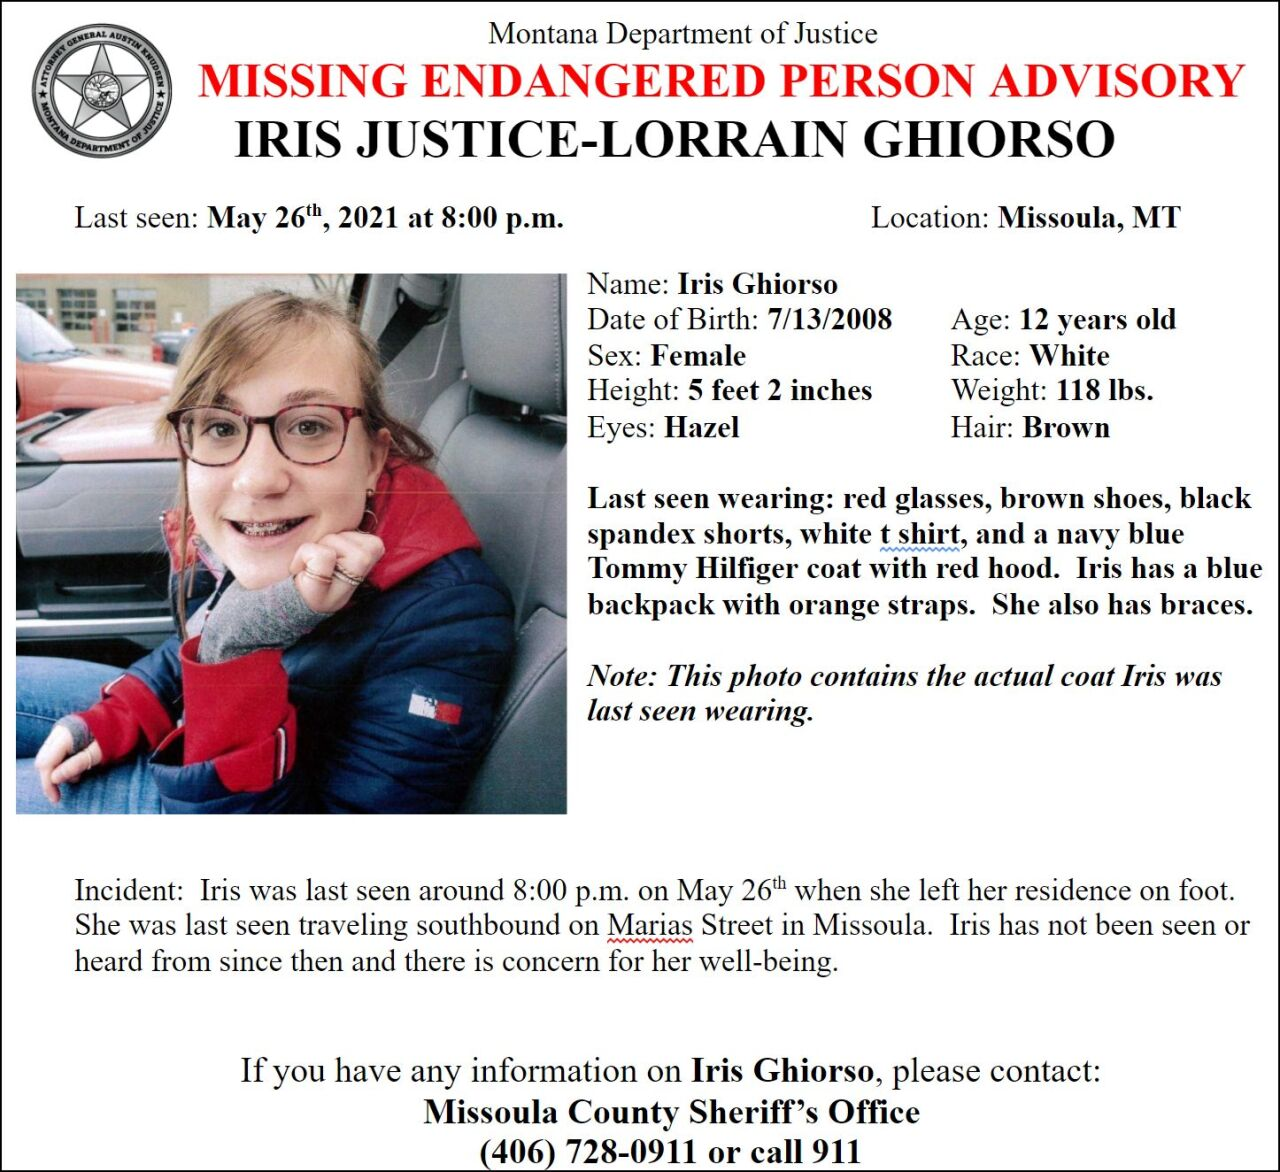 Missing/Endangered Person Advisory for 12-year-old Iris Justice-Lorrain Ghiorso